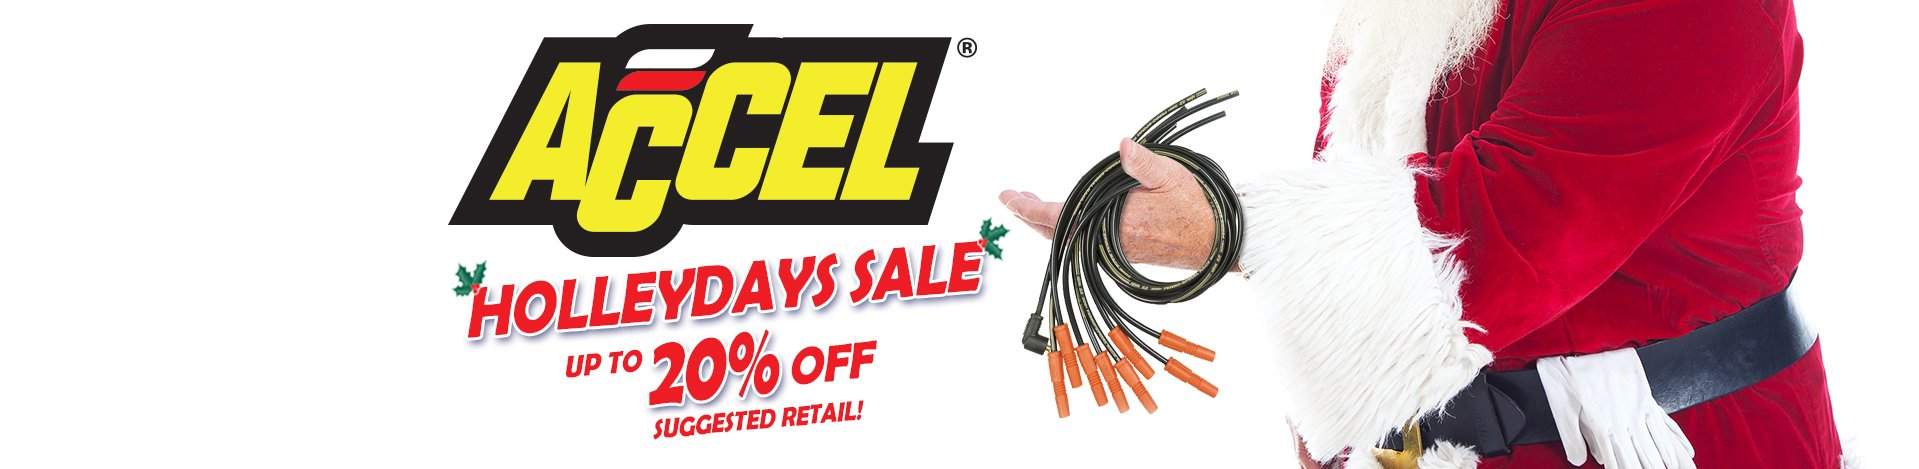 Accel Ignition Manufacturer Of Coils Spark Plug Wires Ford Hei Coil Wiring New Hot Parts